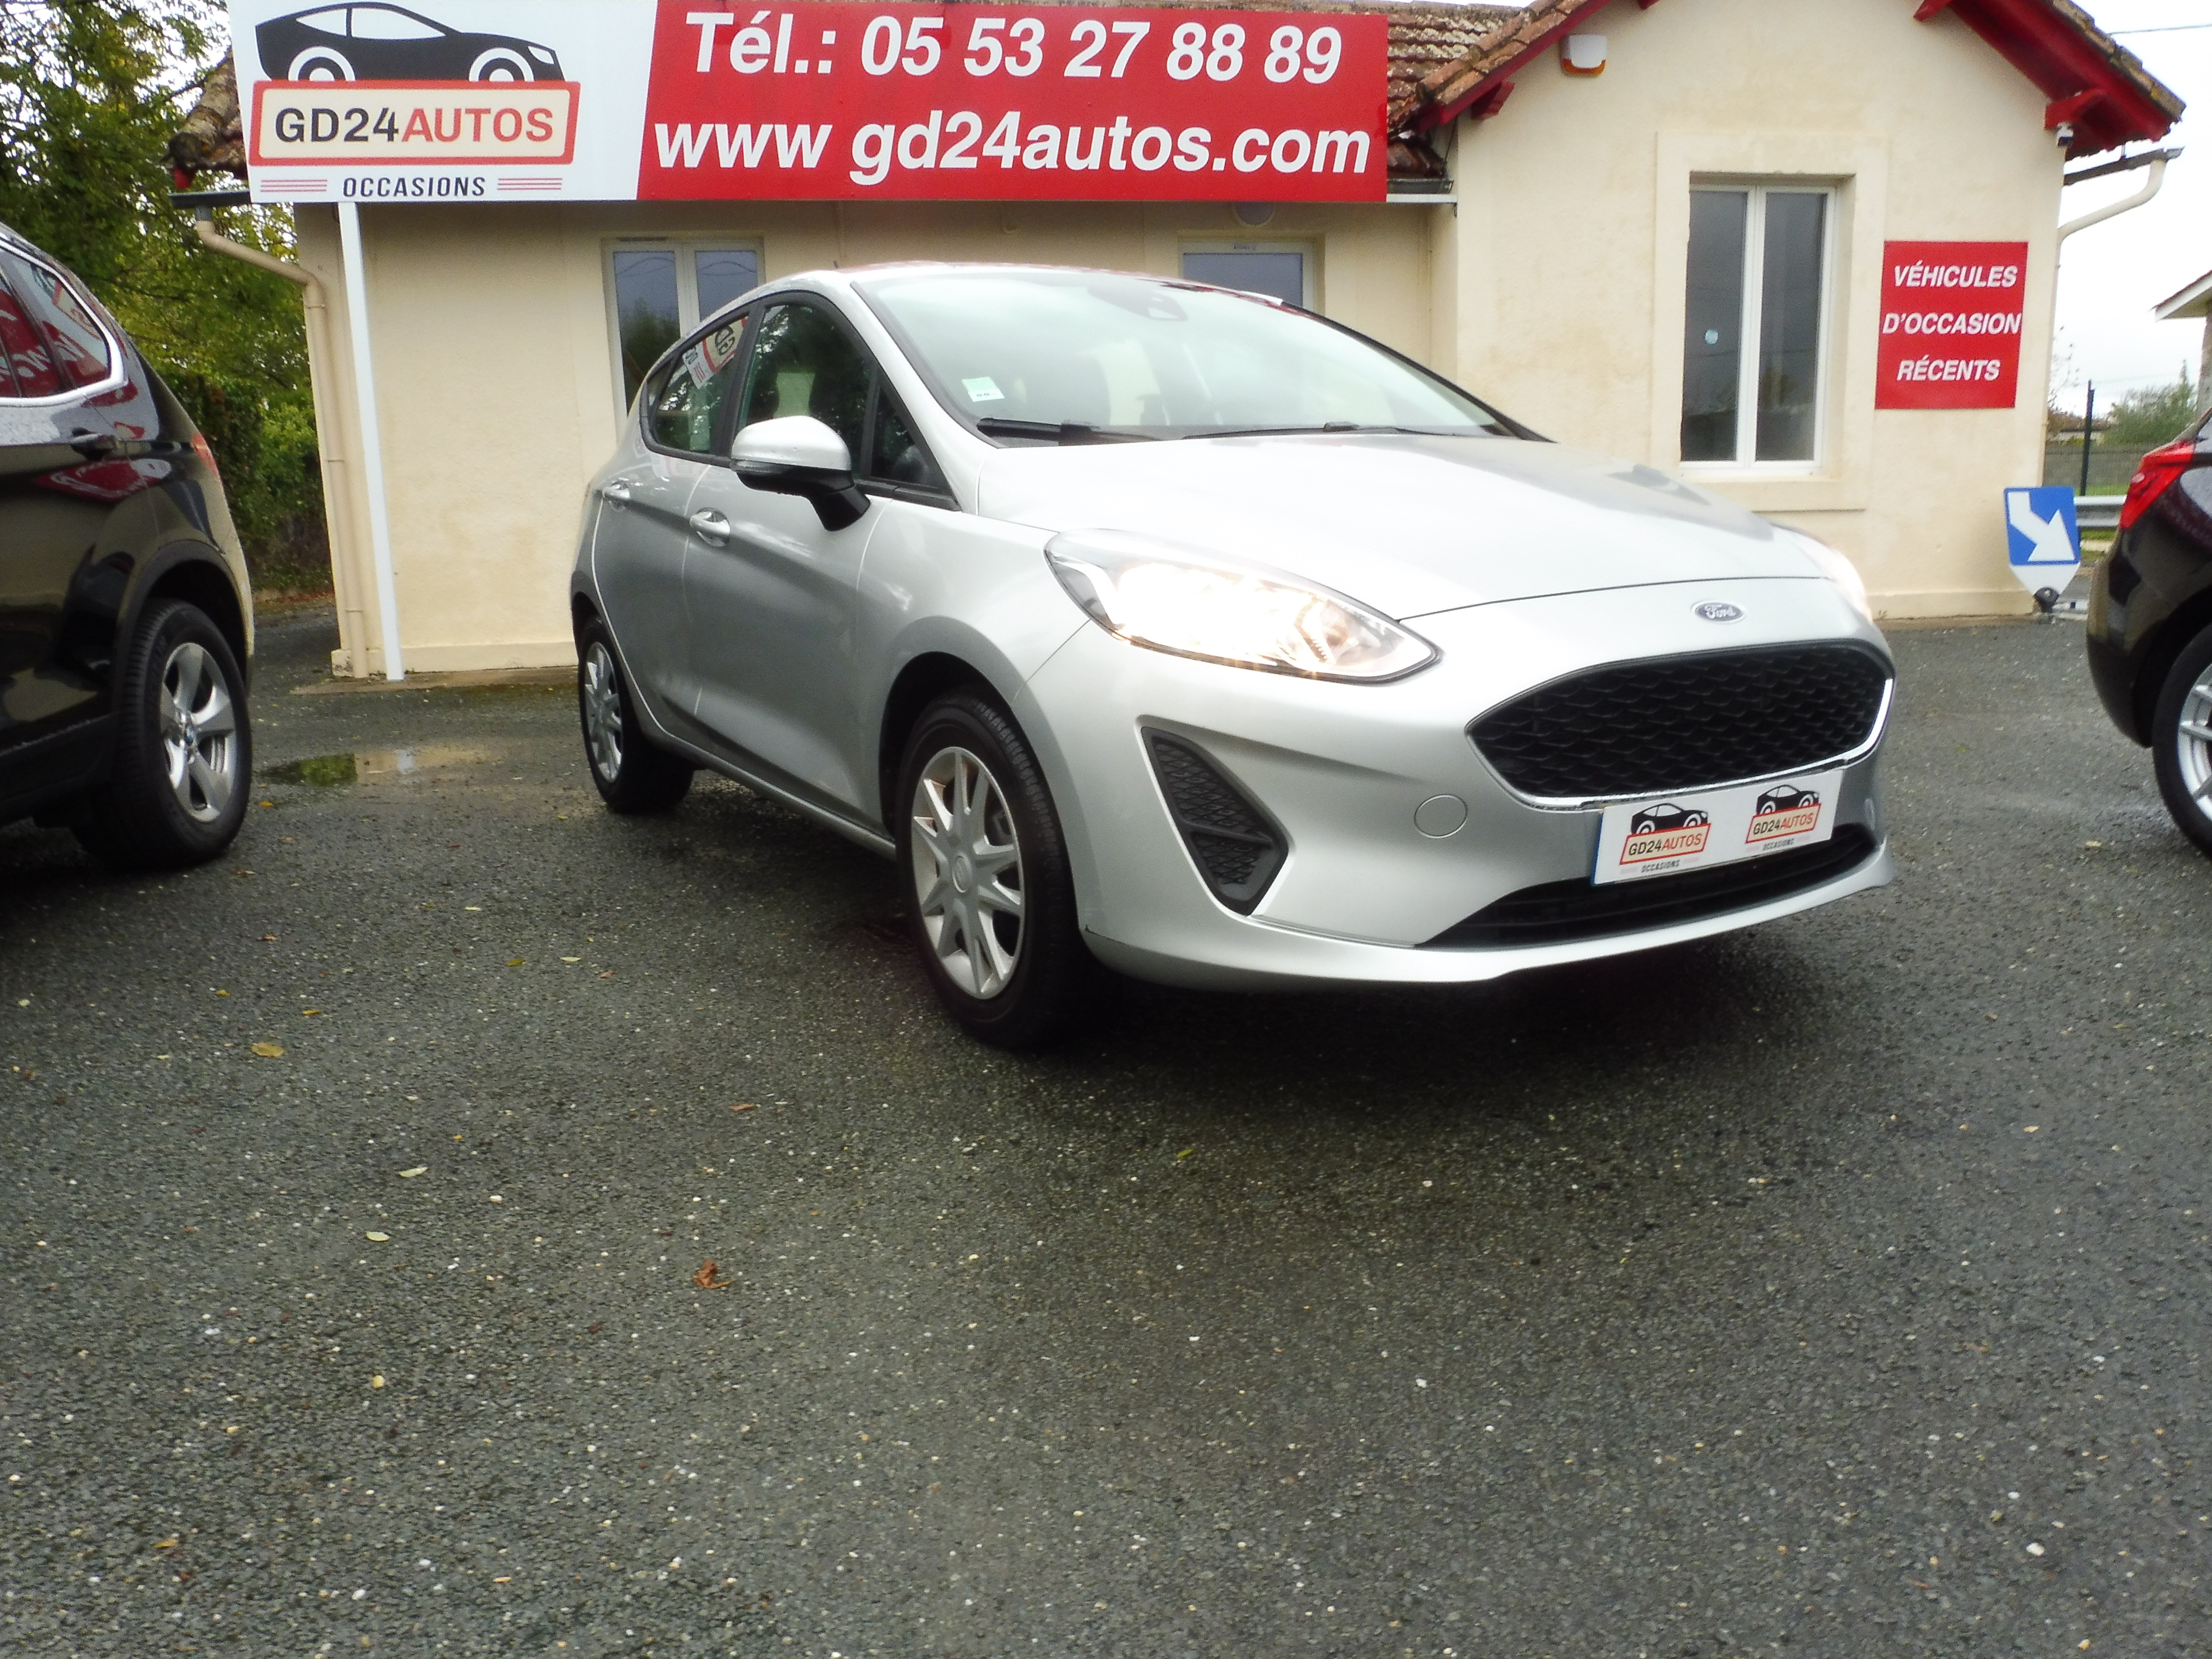 Nouvelle FORD Fiesta 1.1 70 ch Essential 5 p /5900 kms!!/GPS 1ère main